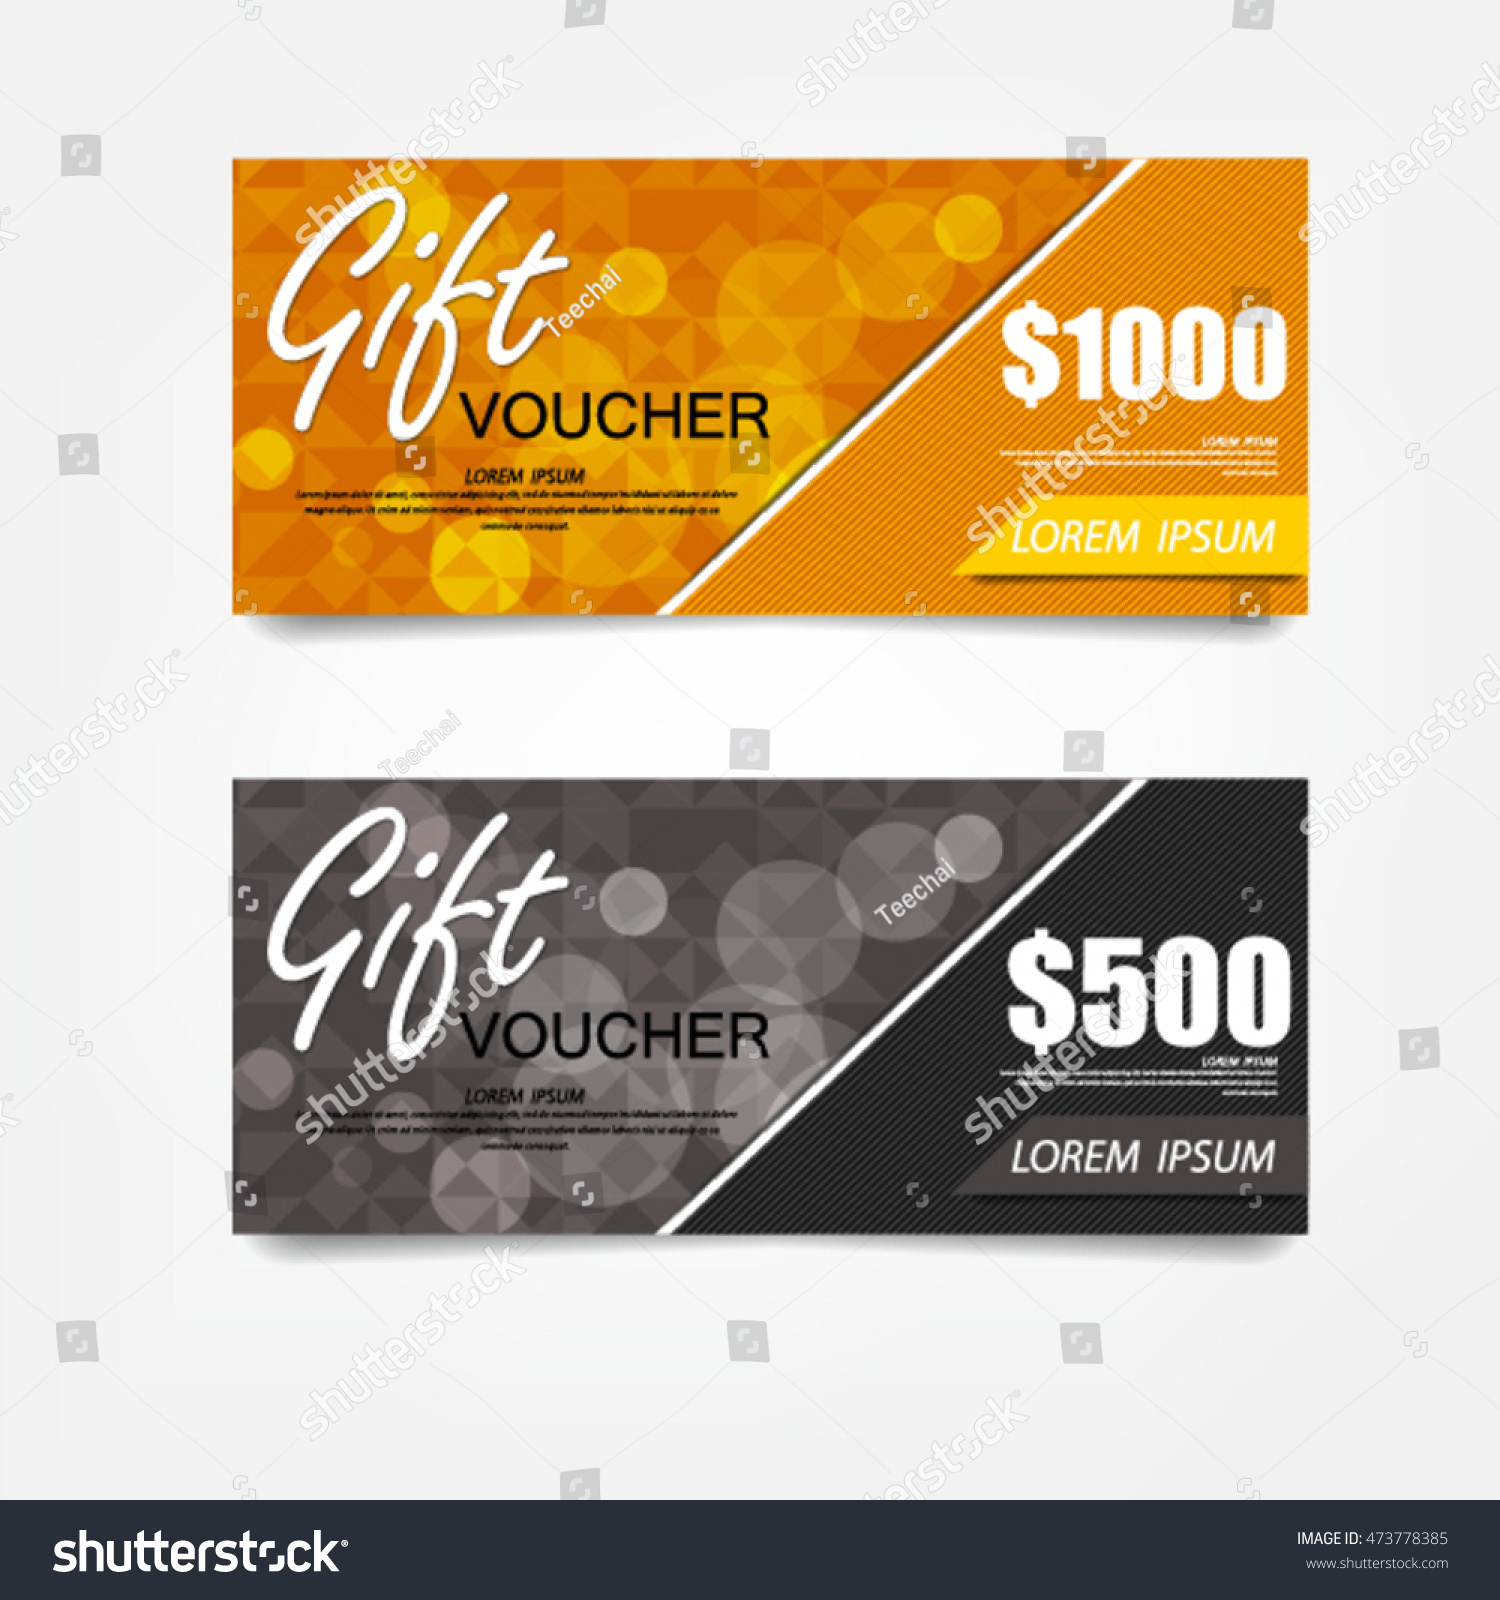 Gift Voucher Template Can Be Use Stock Vector 473778385 - Shutterstock